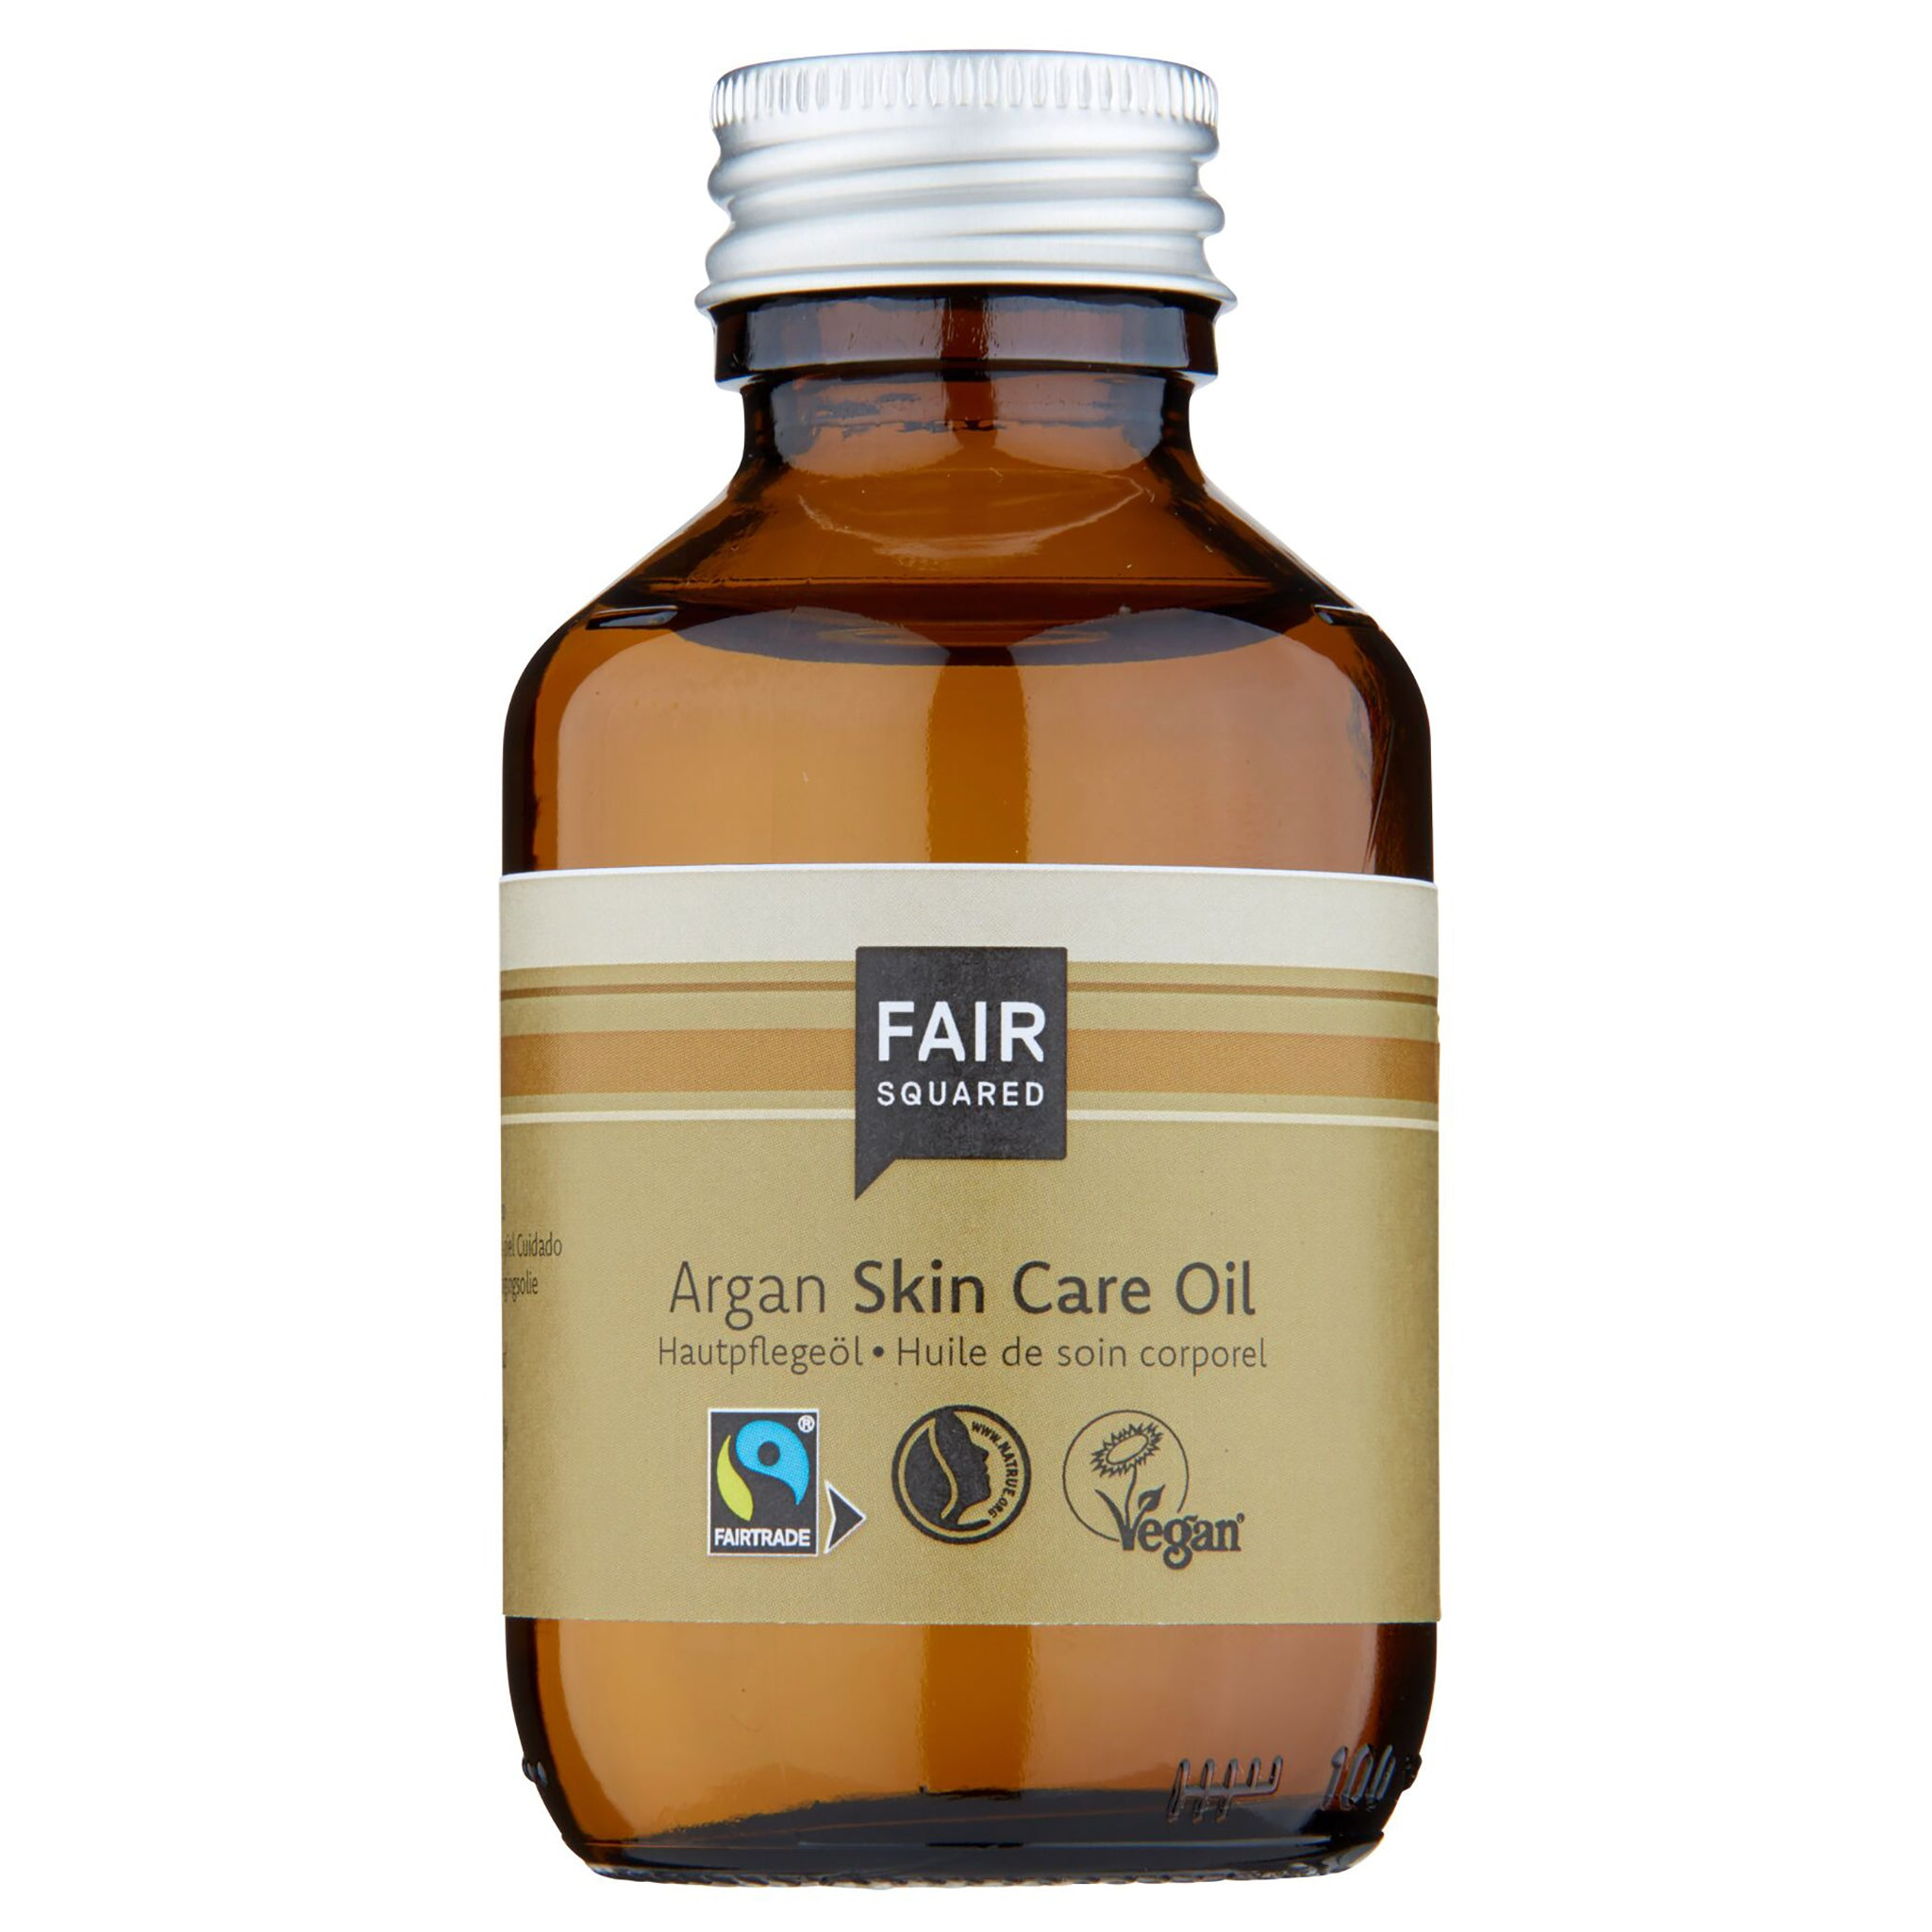 Argan Skin Care Oil  - Zero Waste